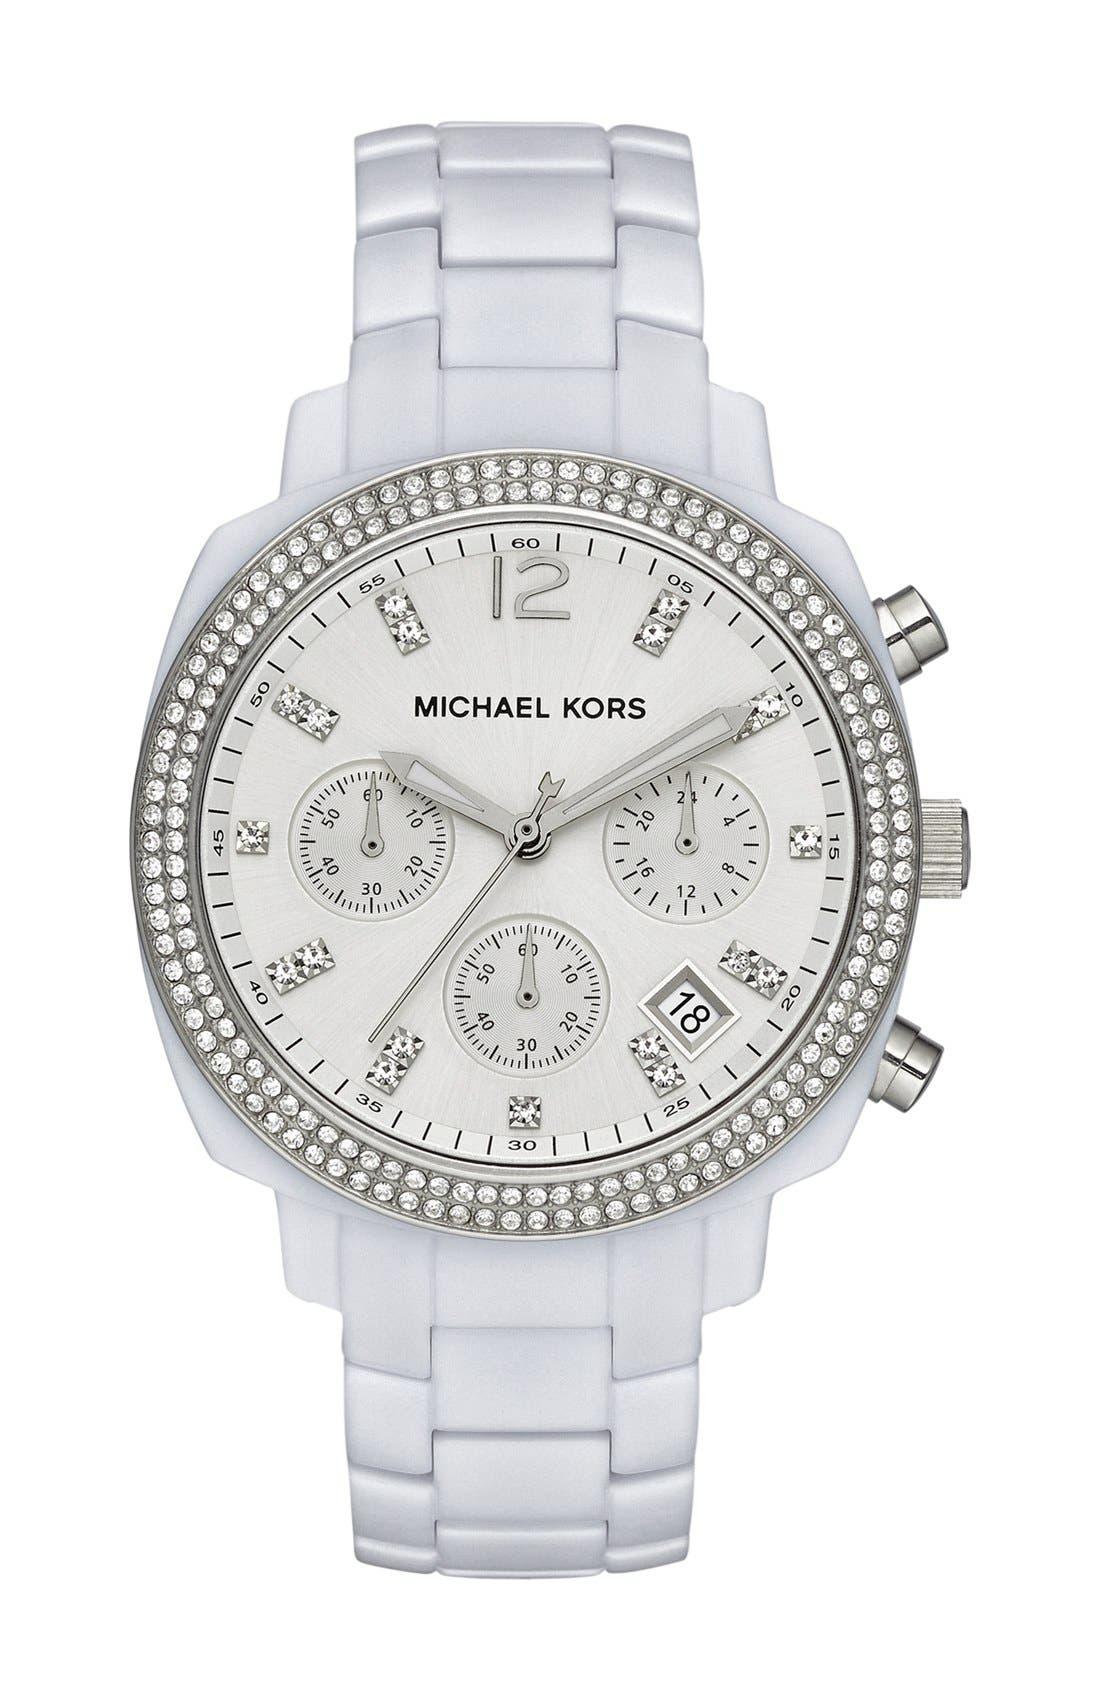 Main Image - Michael Kors 'Wolcott' Chronograph Bracelet Watch, 41mm